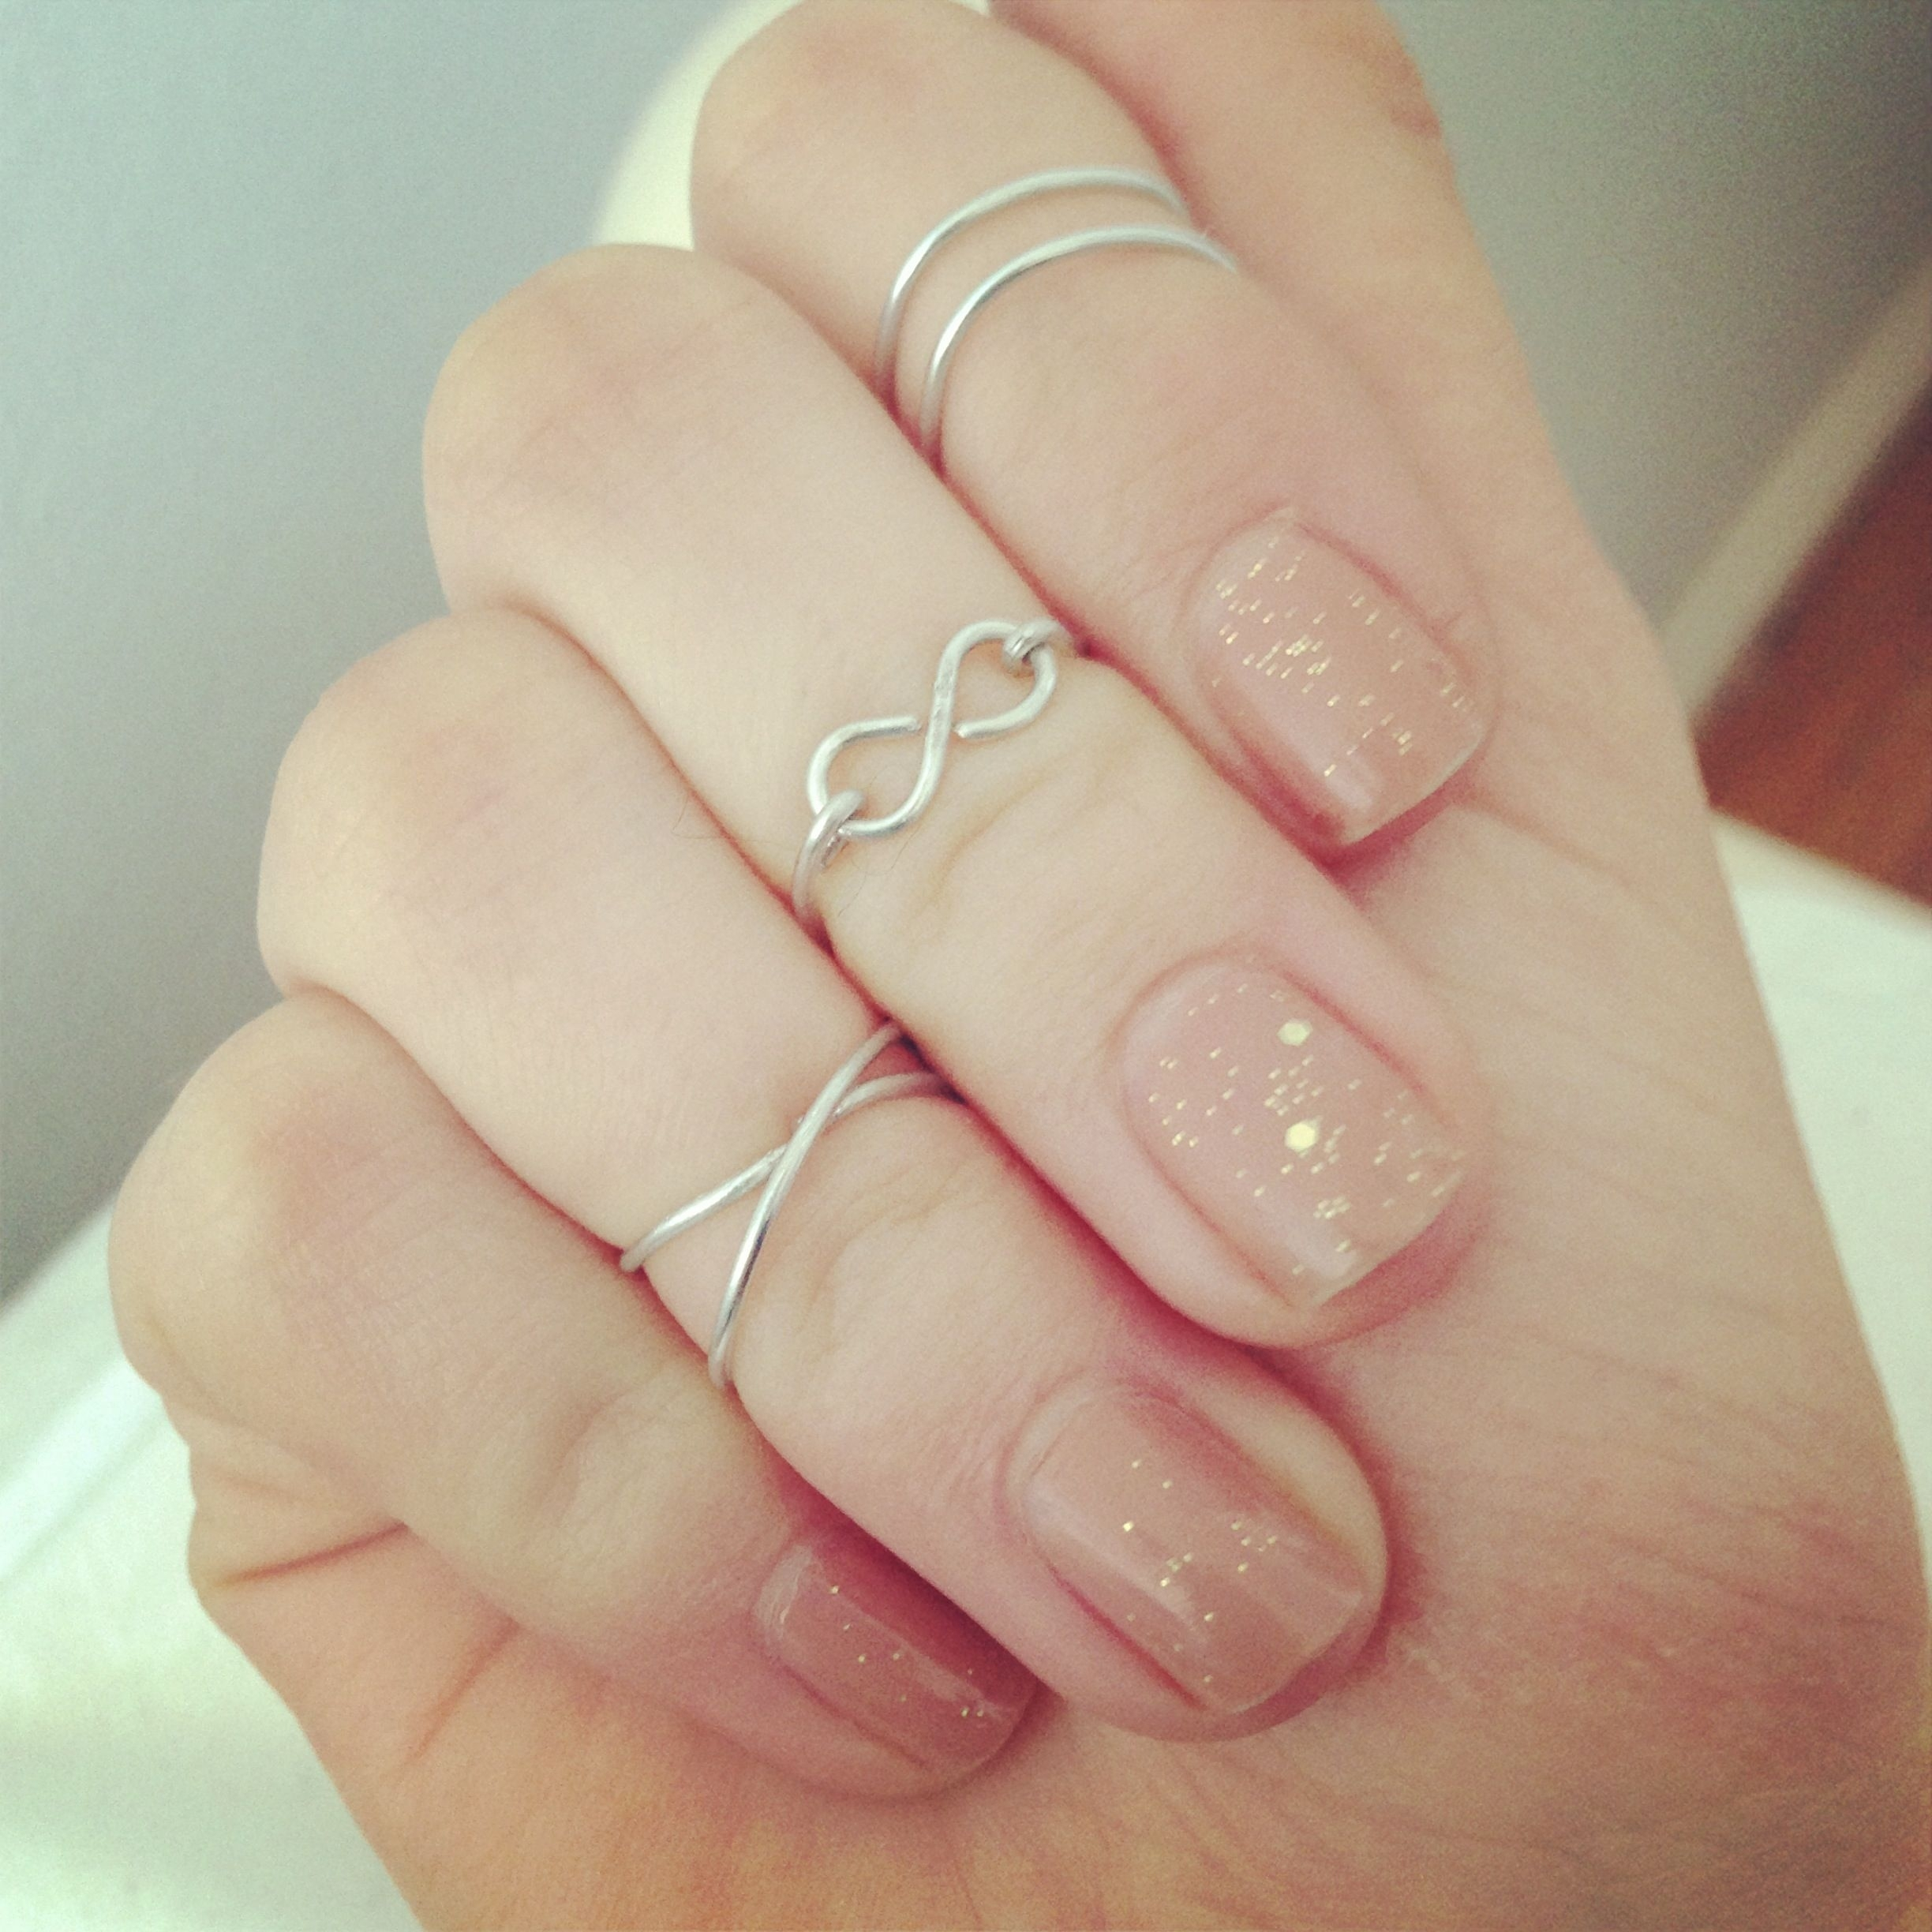 7 Diy Knuckle Rings That Will Knock Your Socks Off  | Knuckle In 2017 Diy Chevron Rings (Gallery 2 of 15)